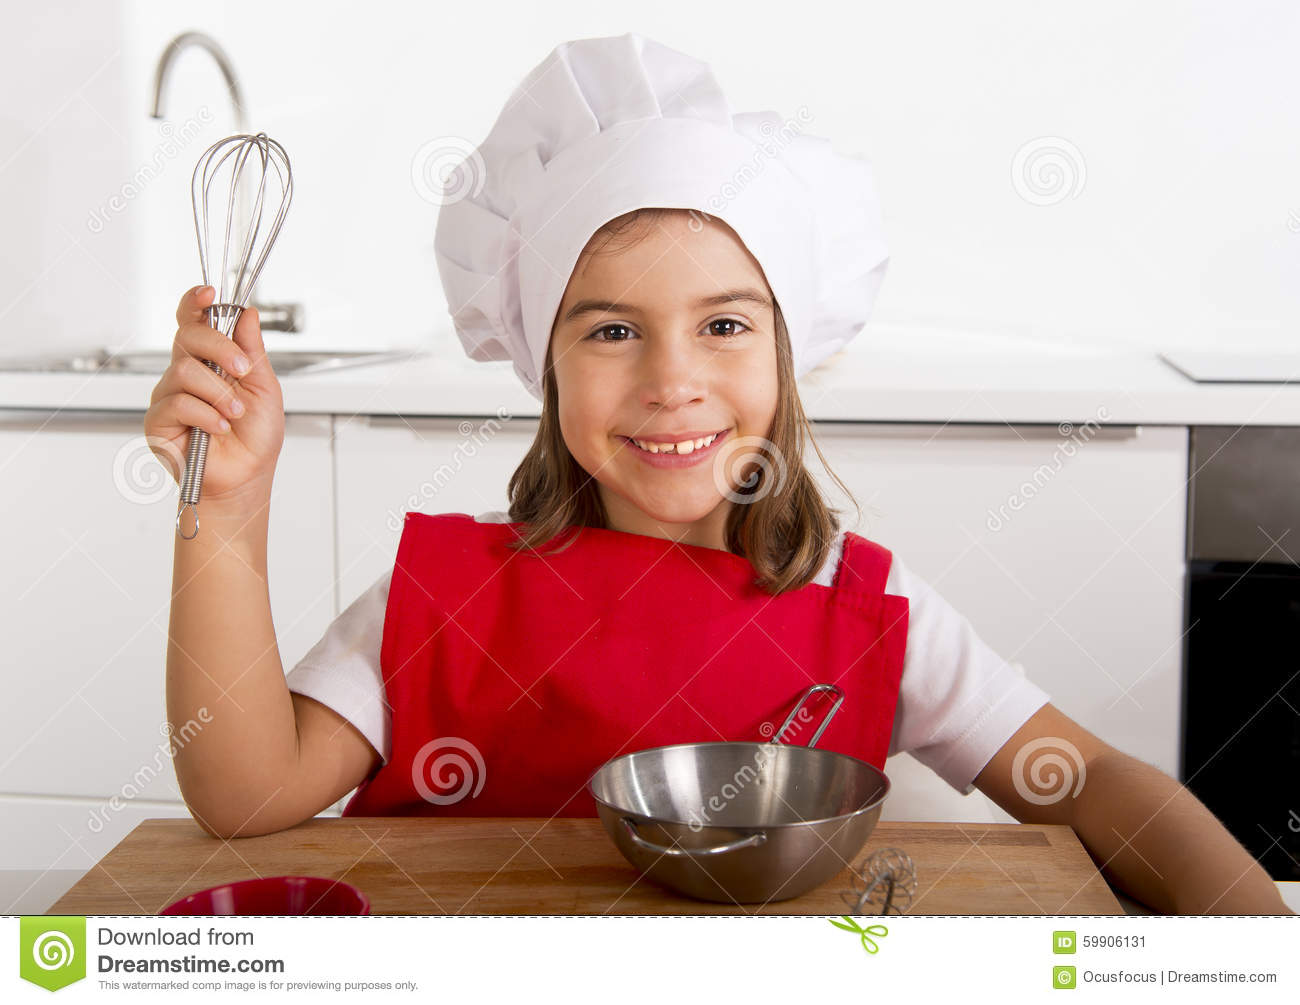 how to learn to be a chef at home